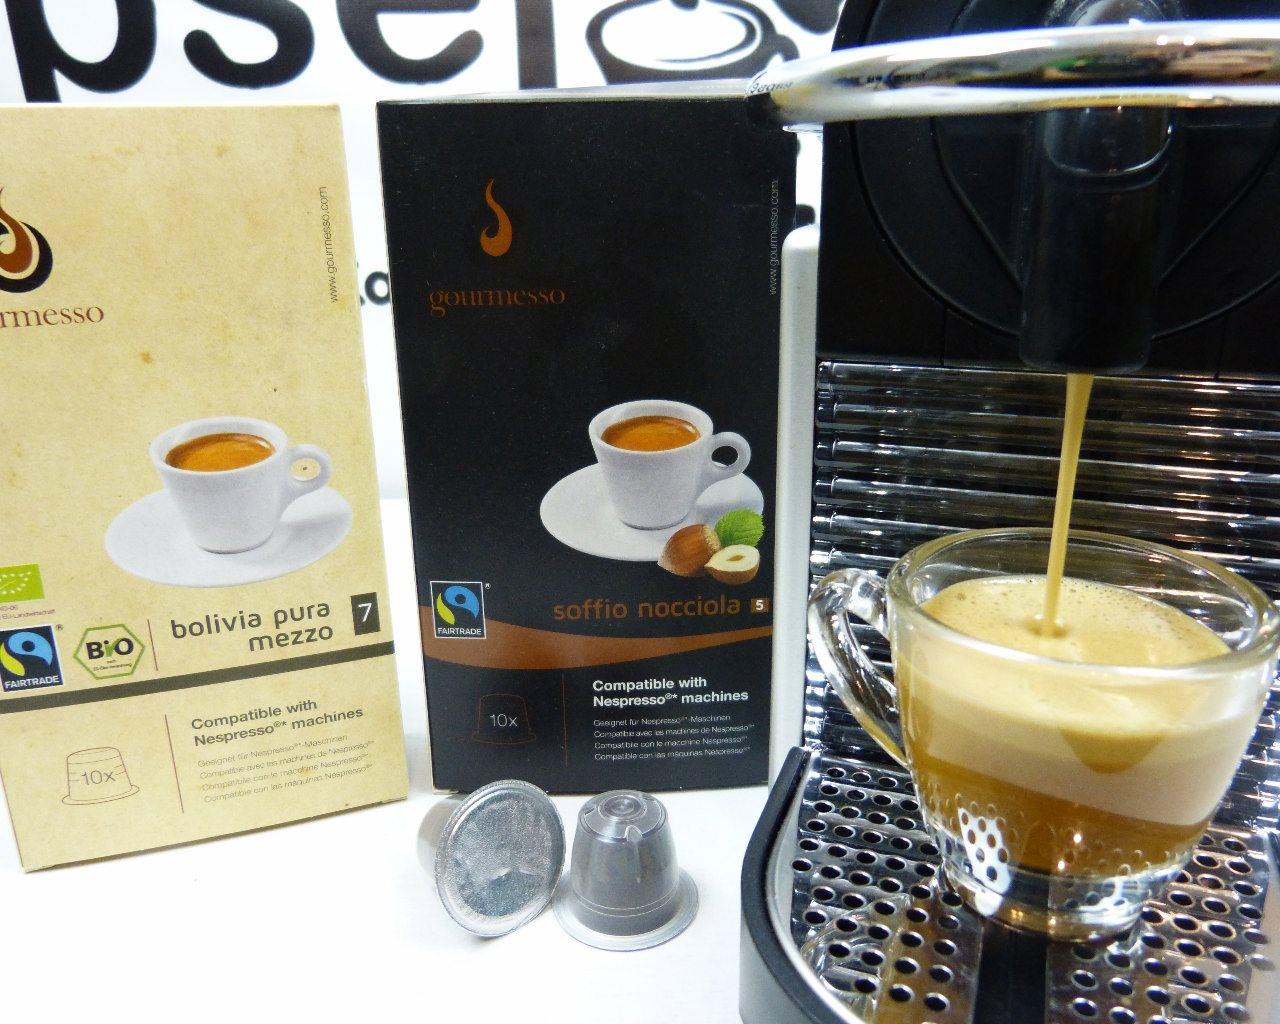 gourmesso kaffeekapseln im test kompatibel mit nespresso017 kapsel. Black Bedroom Furniture Sets. Home Design Ideas